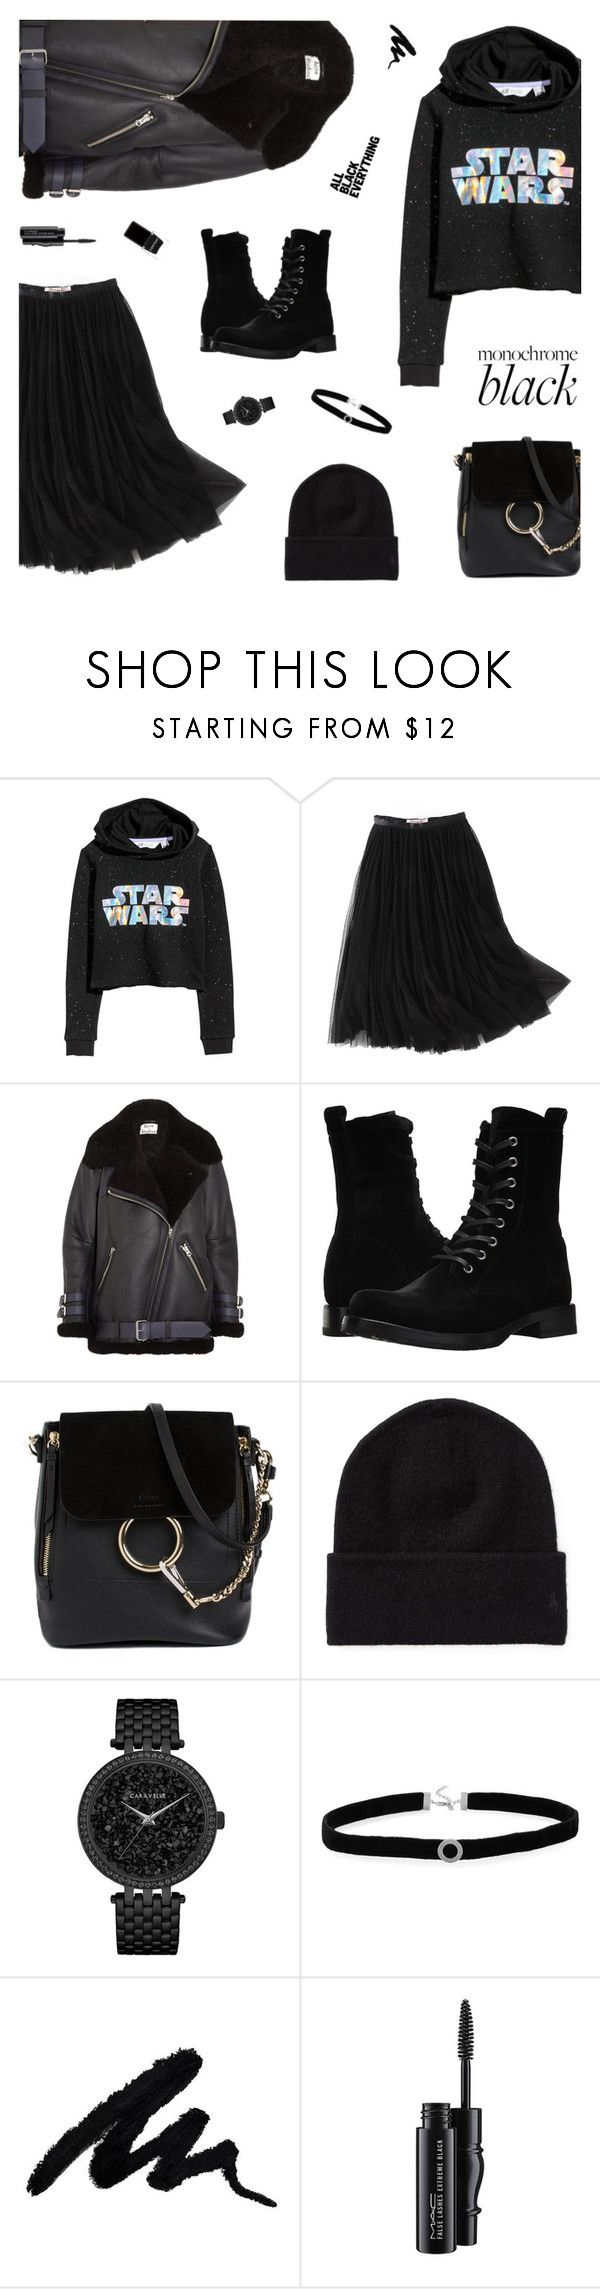 """""""Black Harmony"""" by nastenkakot ❤ liked on Polyvore featuring H&M, WithChic, Acne Studios, Frye, Chloé, Caravelle by Bulova, BillyTheTree, MAC Cosmetics, Context and allblackoutfit"""